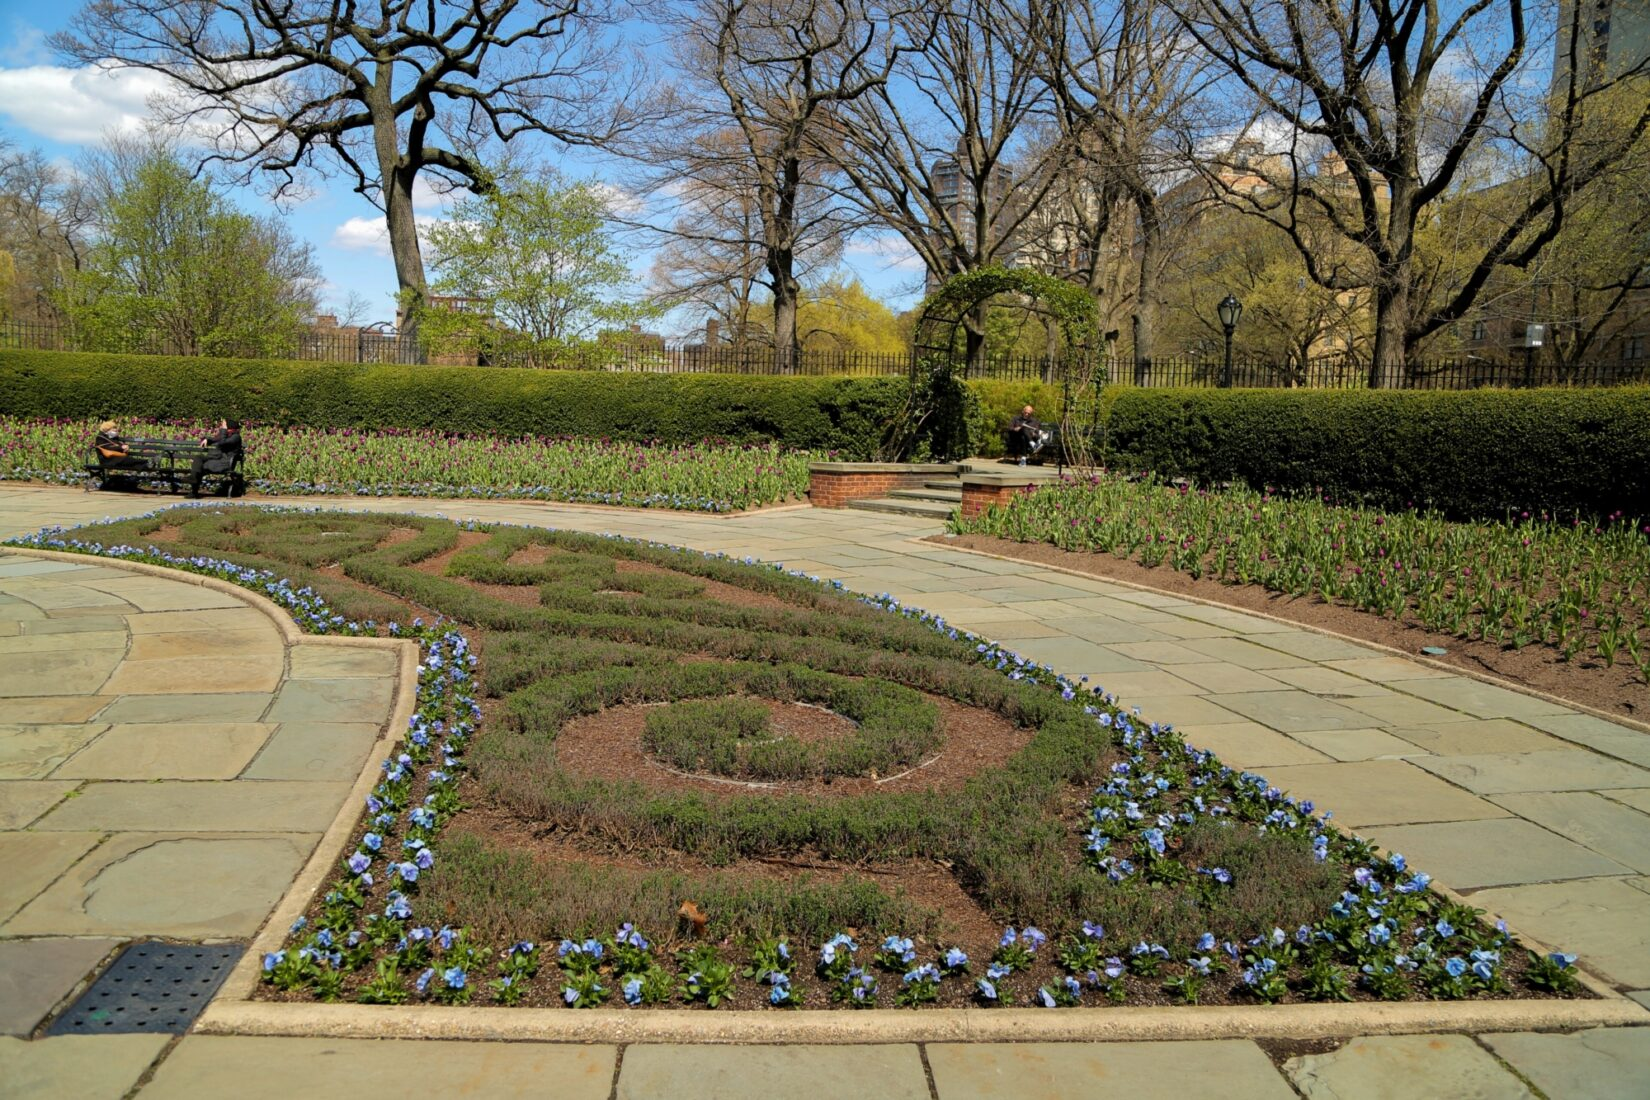 A manicured flower bed in early spring